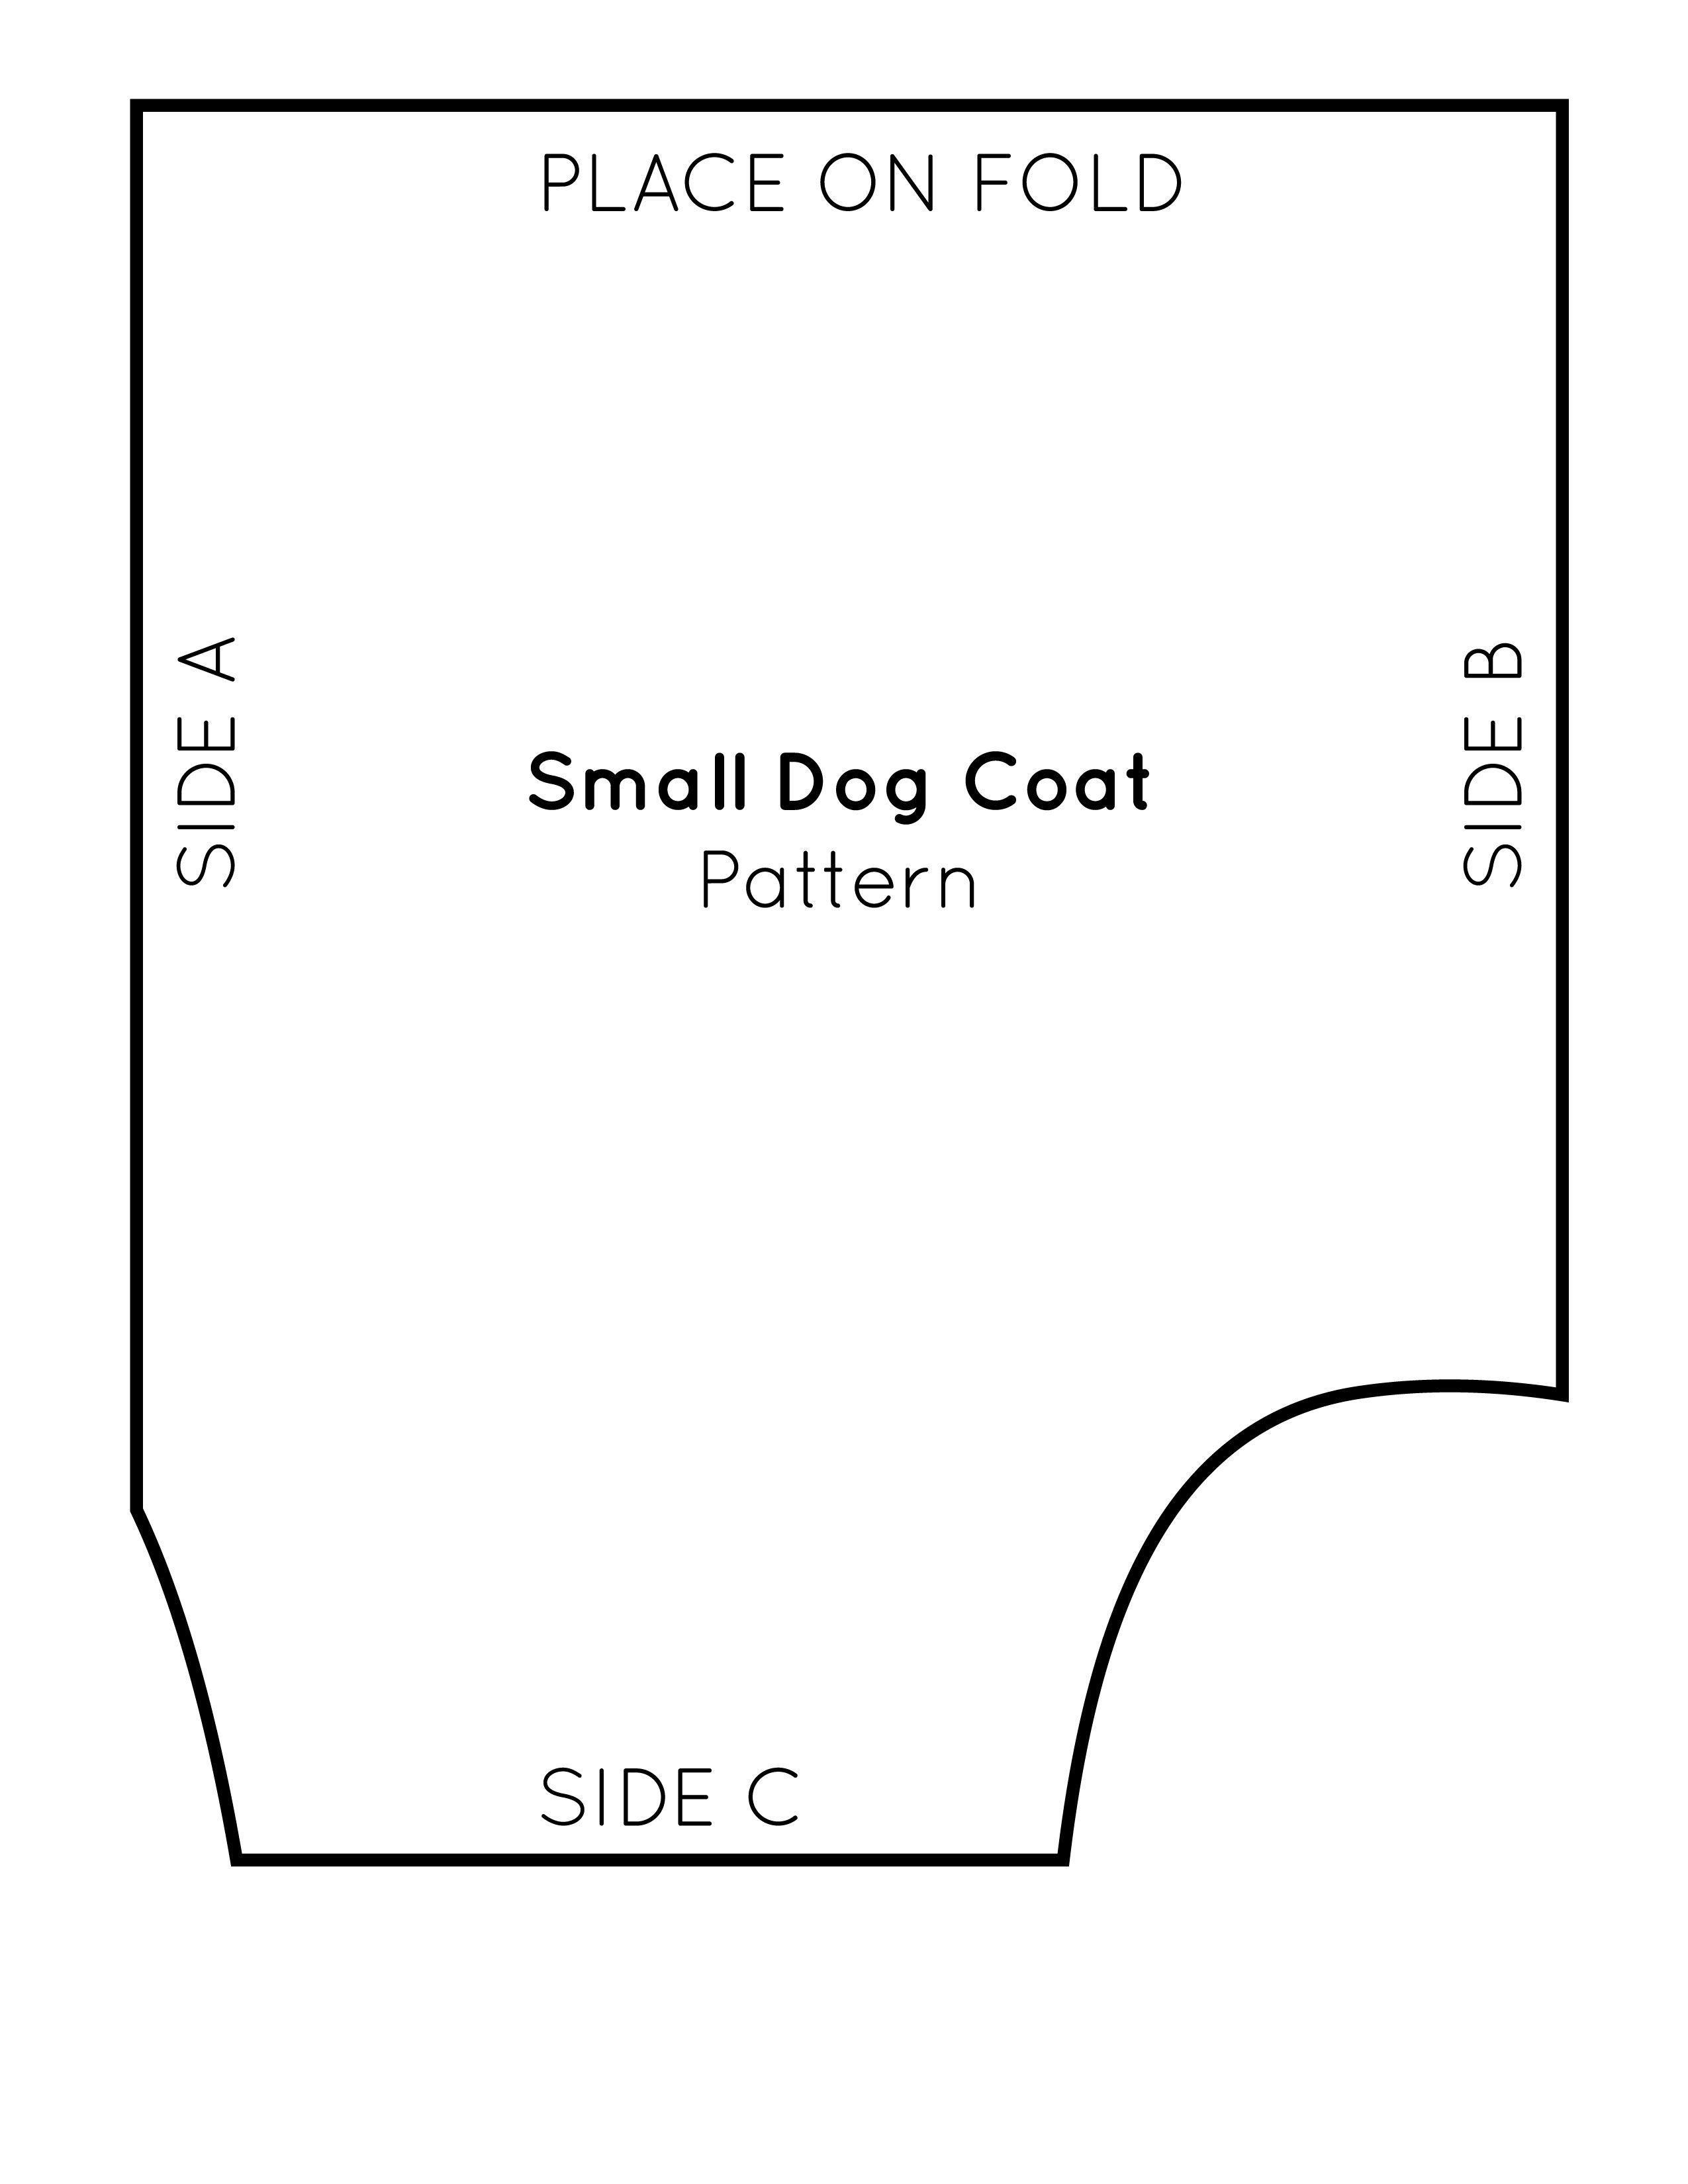 Free Sewing Pattern For A Warm, Weatherproof Dog Coat - Free Printable Dog Coat Sewing Patterns